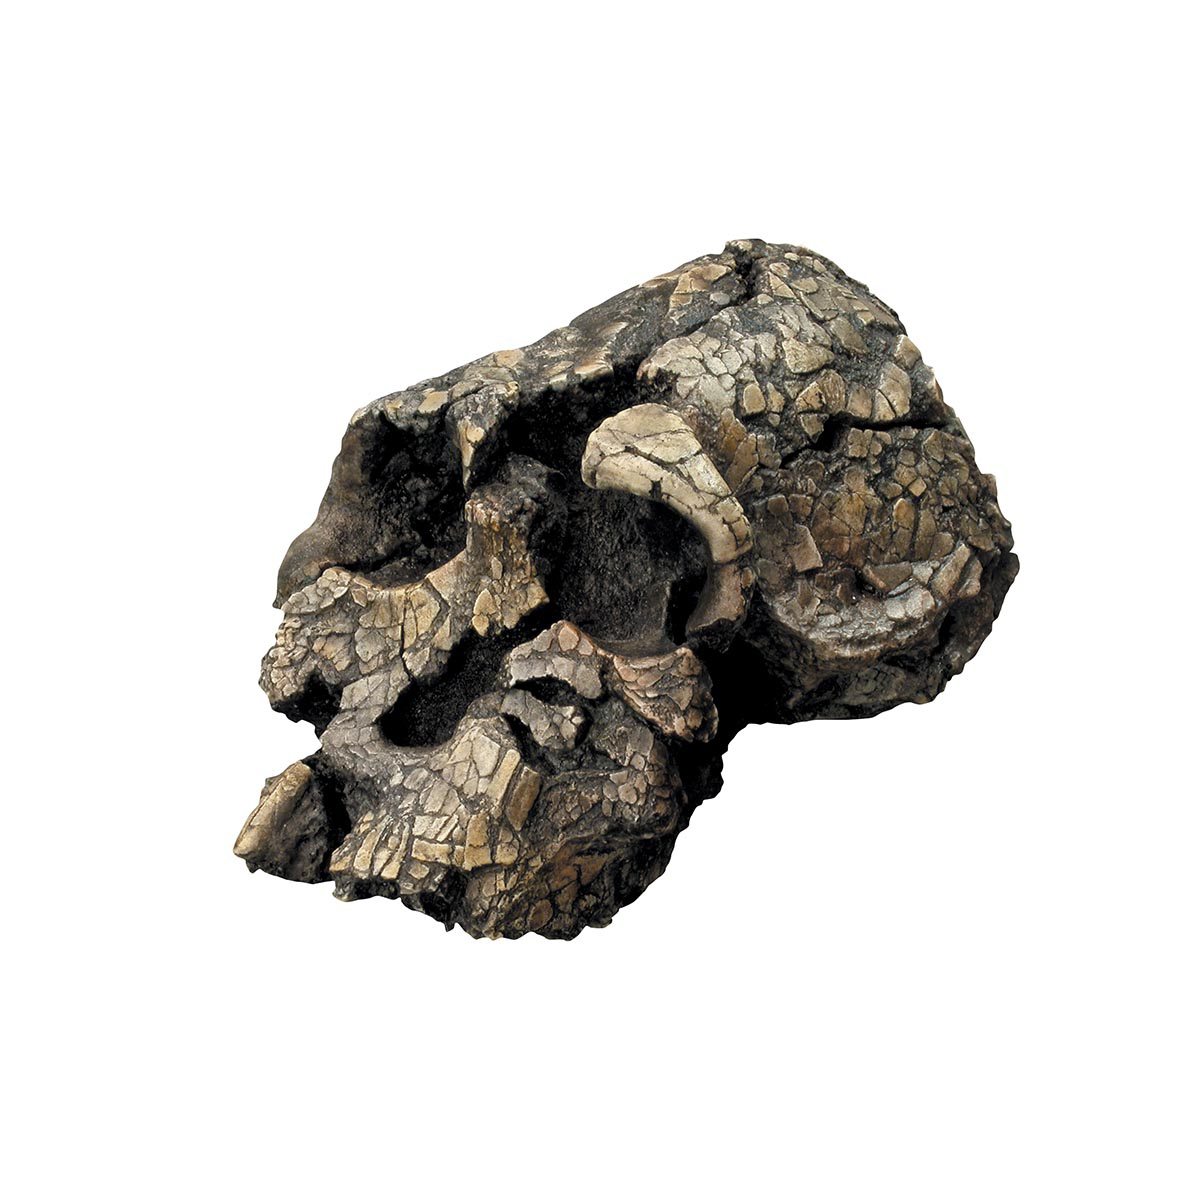 The skull of a 3.3-million-year-old hominin, Kenyanthropus platyops, was found in 1999 about a kilometer from the tool site. Photo: Bone Clones® Kenyanthropus platyops Skull.